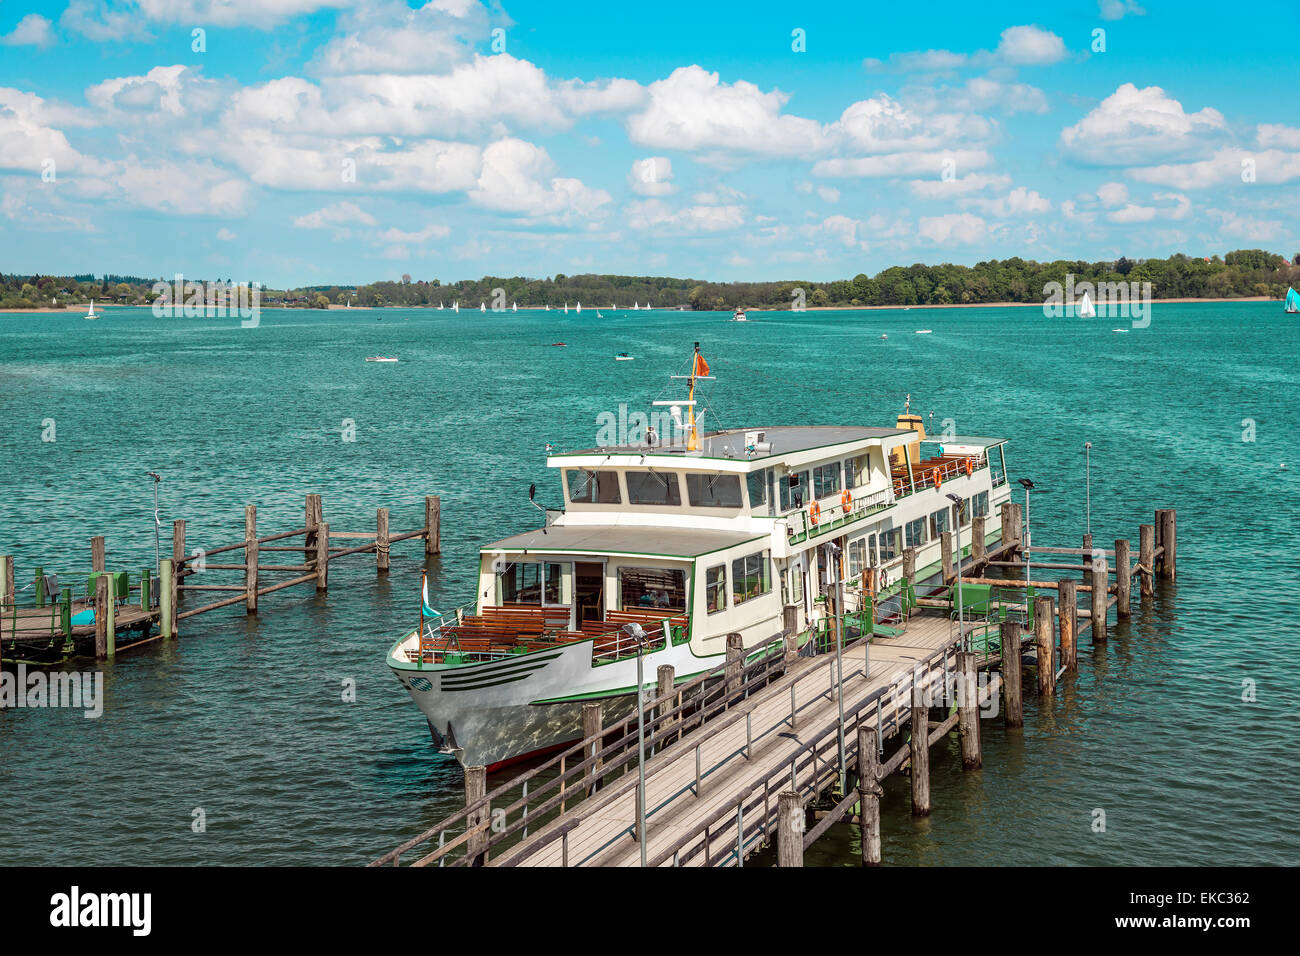 Passenger ship on Chiemsee in Germany - Stock Image